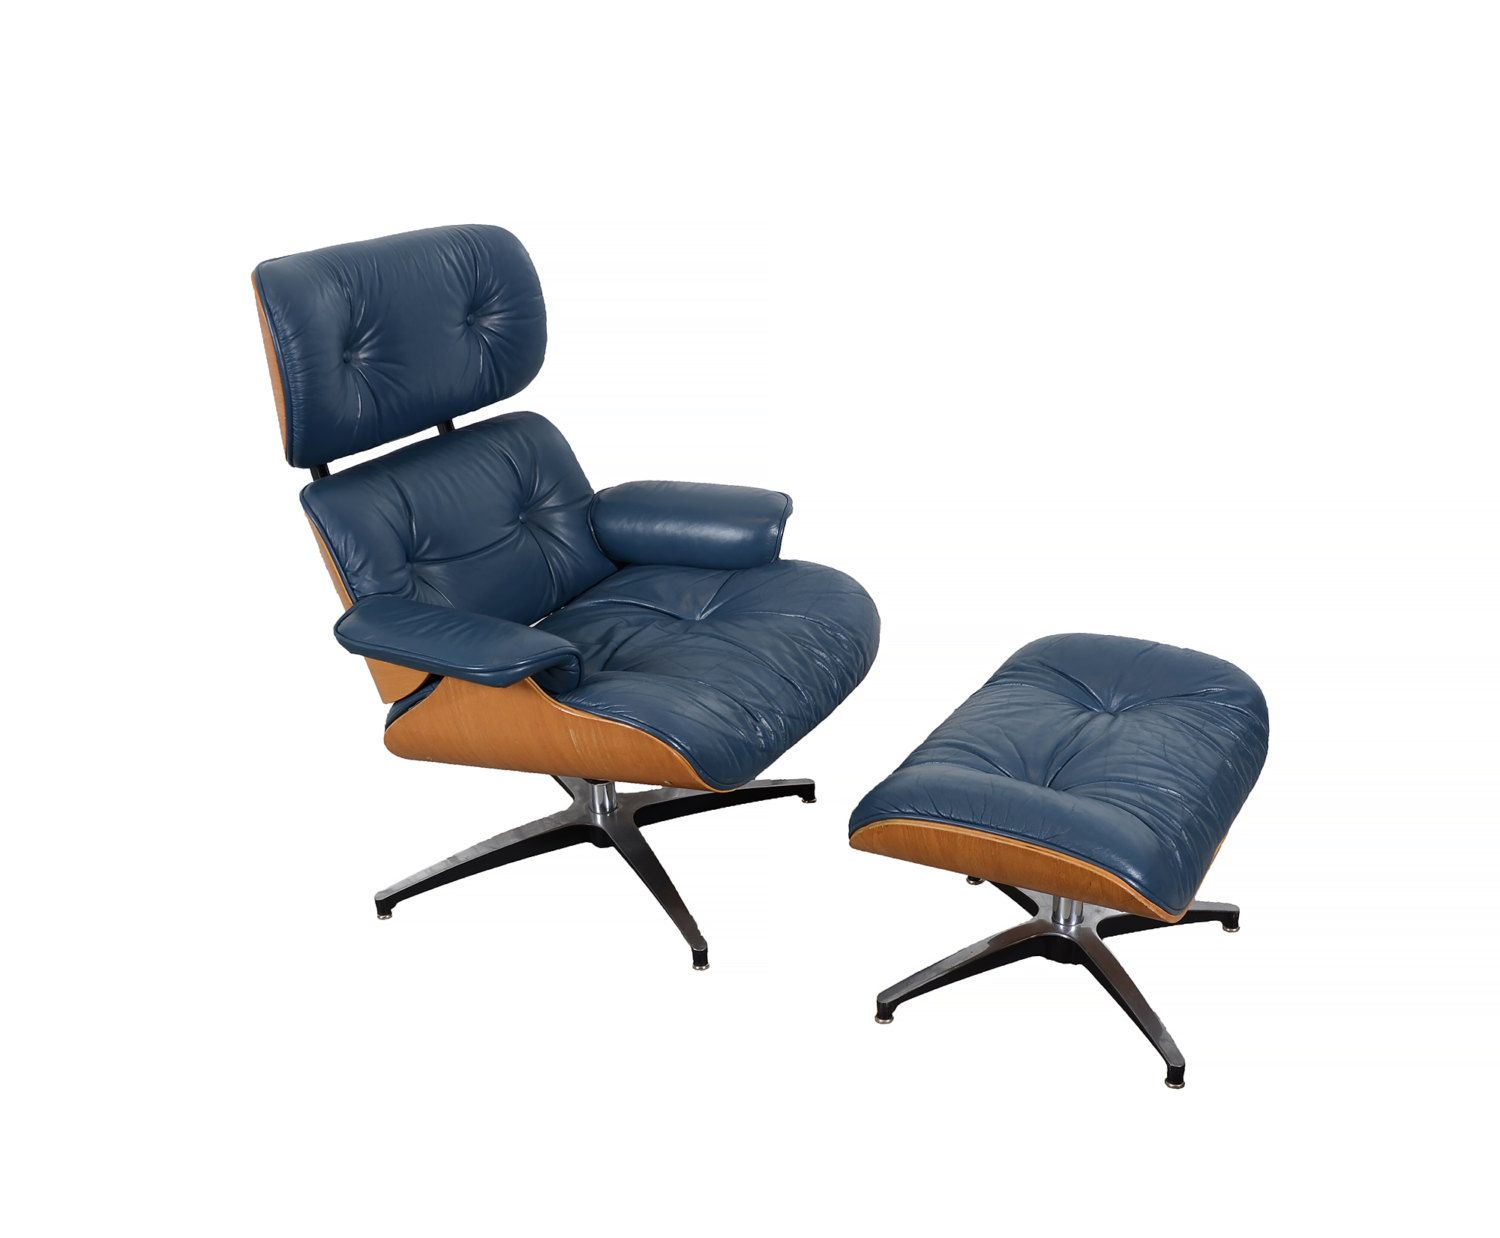 Eames Navy Blue Leather Lounge Chair And Ottoman Selig Mid Century Modern  By HearthsideHome On Etsy